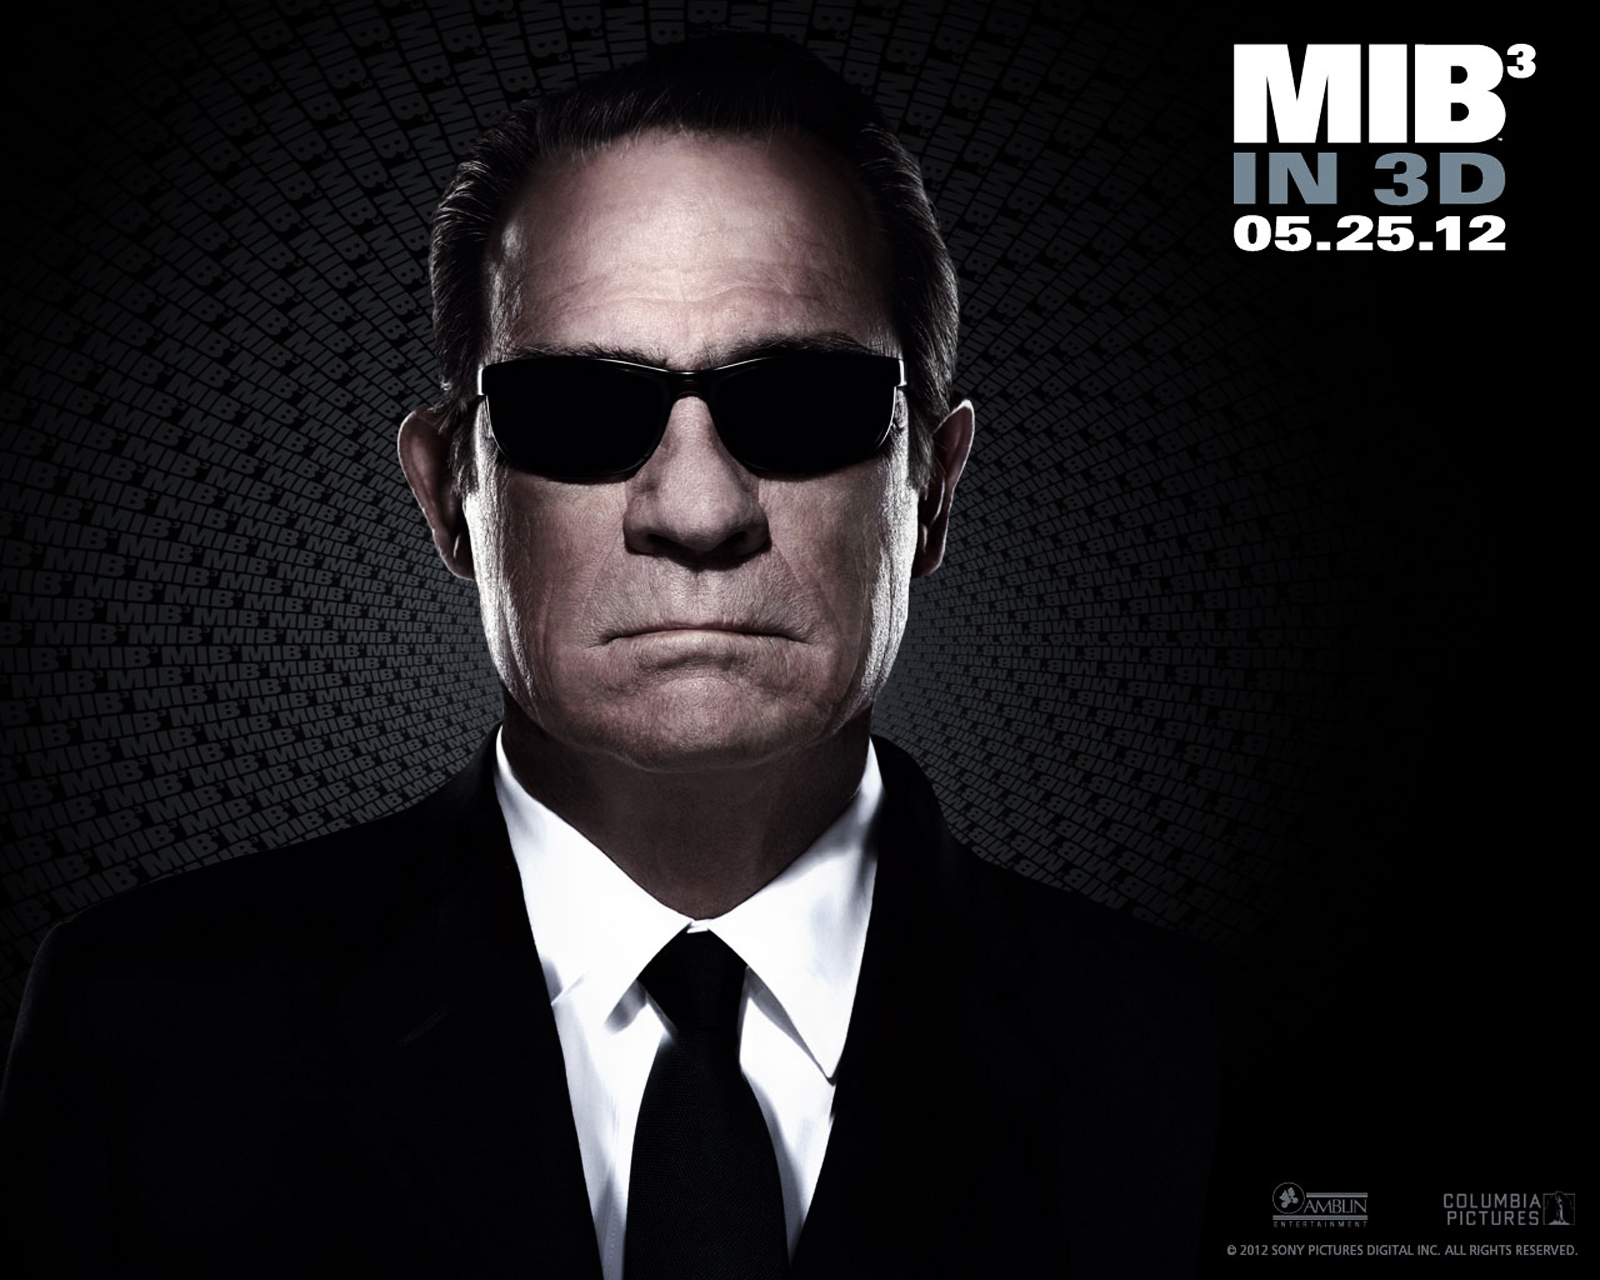 http://4.bp.blogspot.com/-j_nfHcXBE_A/T4NSsHdlTuI/AAAAAAAABPA/C-spx9mFcmc/s1600/Men_in_Black_3_Tommy_Lee_Jones_Poster-Vvallpaper.Net.jpg